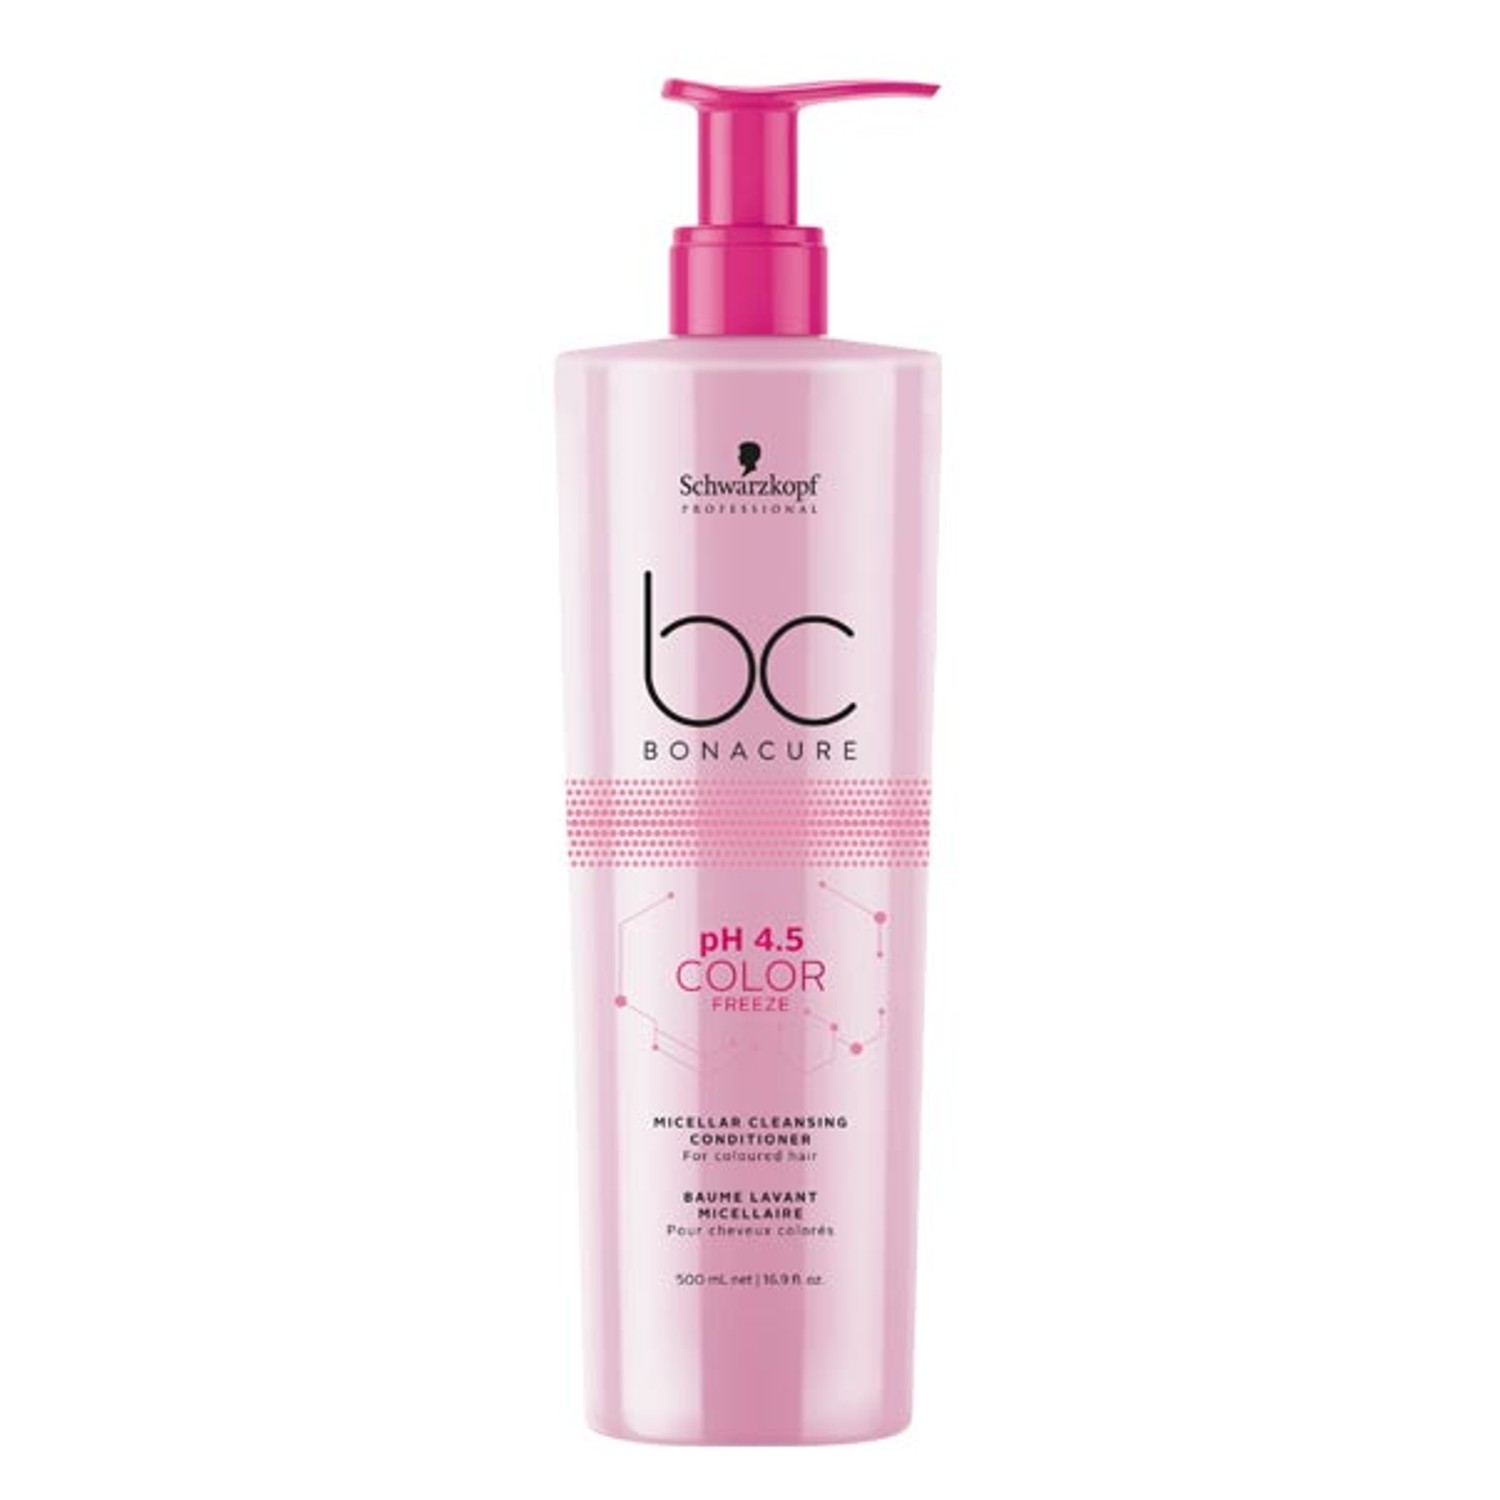 Schwarzkopf BC pH 4.5 COLOR FREEZE Micellar Cleansing Conditioner 500 ml